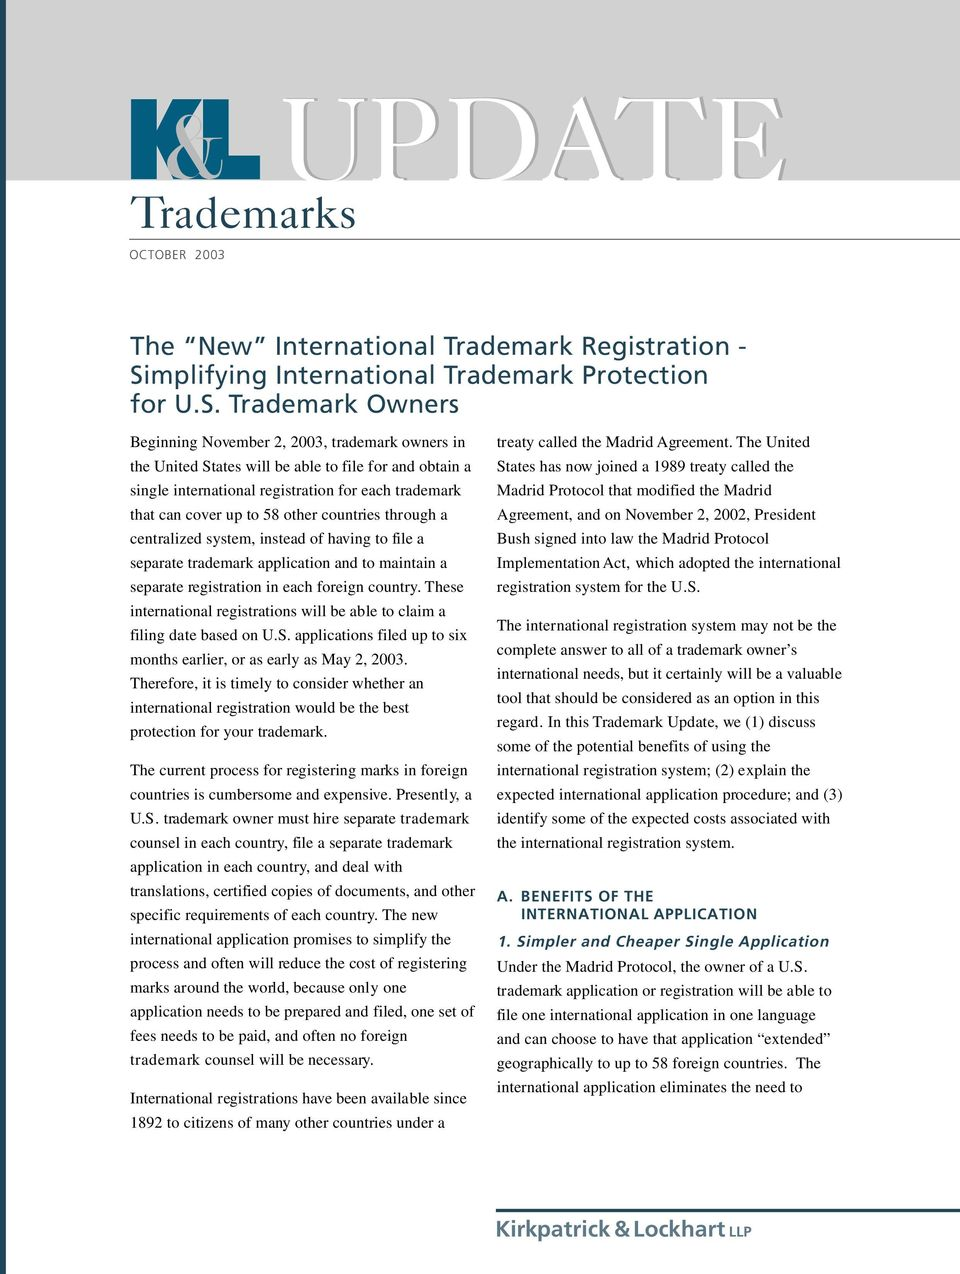 Trademark Owners Beginning November 2, 2003, trademark owners in the United States will be able to file for and obtain a single international registration for each trademark that can cover up to 58